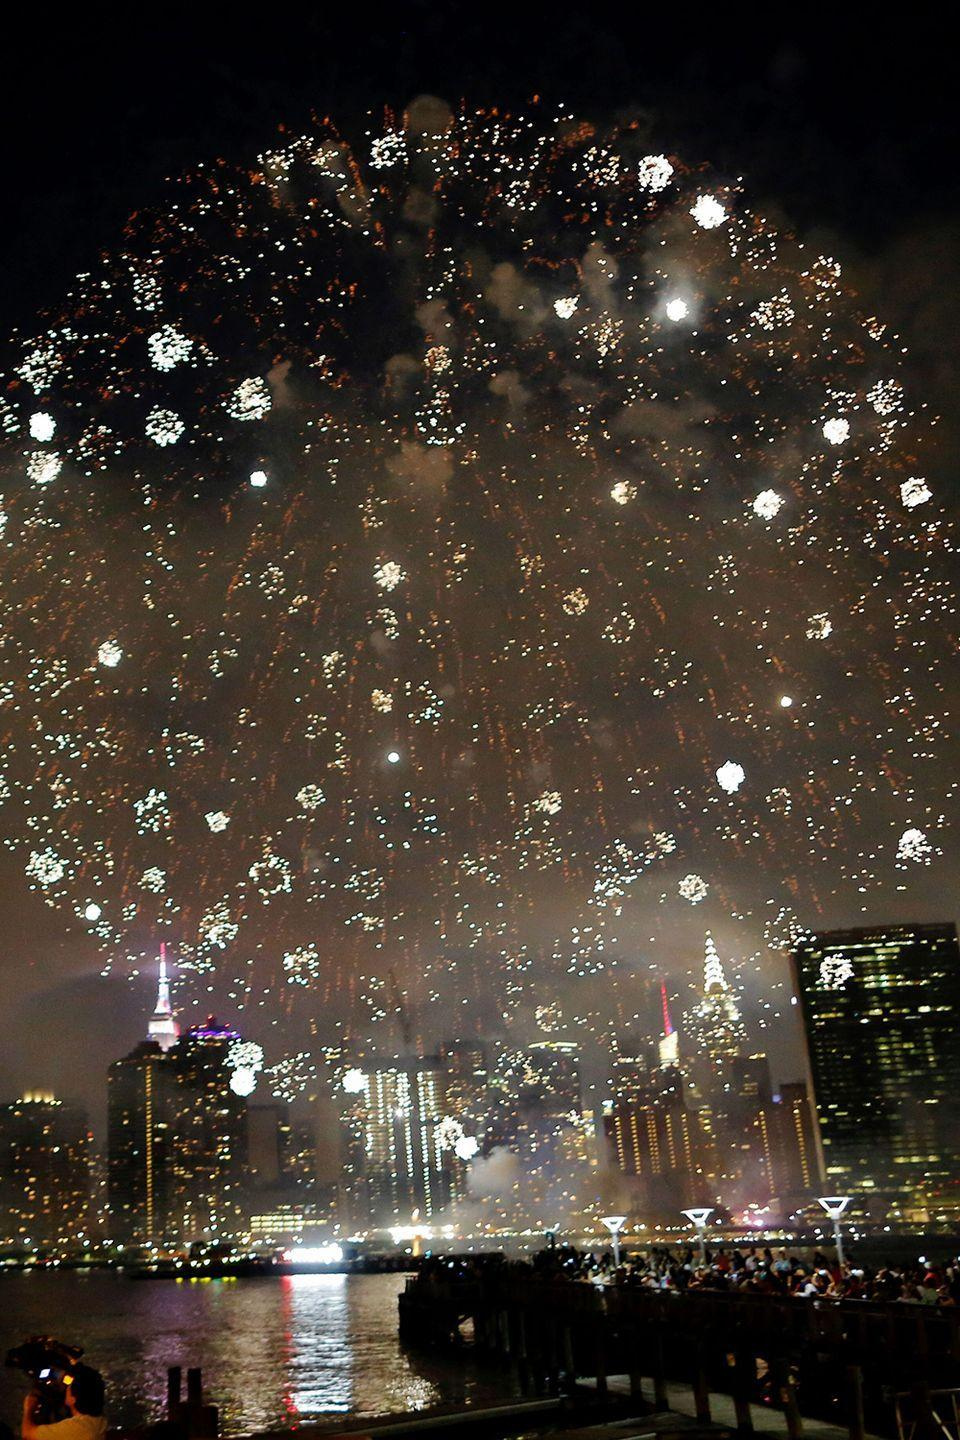 <p>People watch the annual Macy's 4th of July fireworks show from Queens, New York.</p>